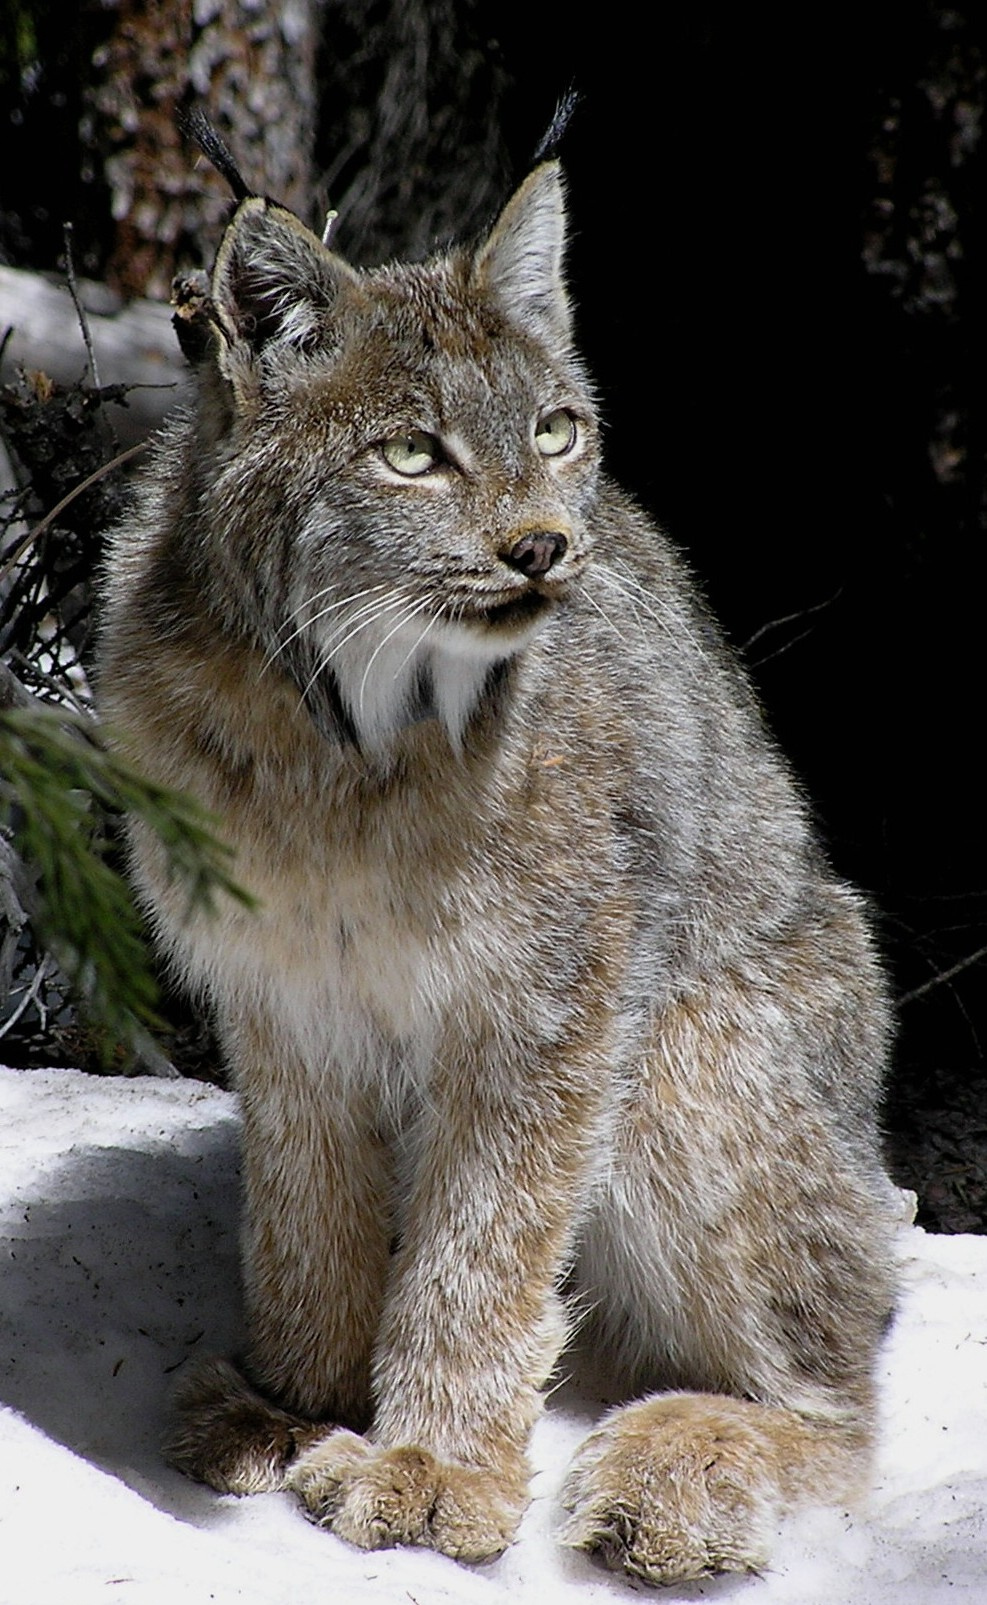 An adult lynx in Colorado warily surveys its surroundings.